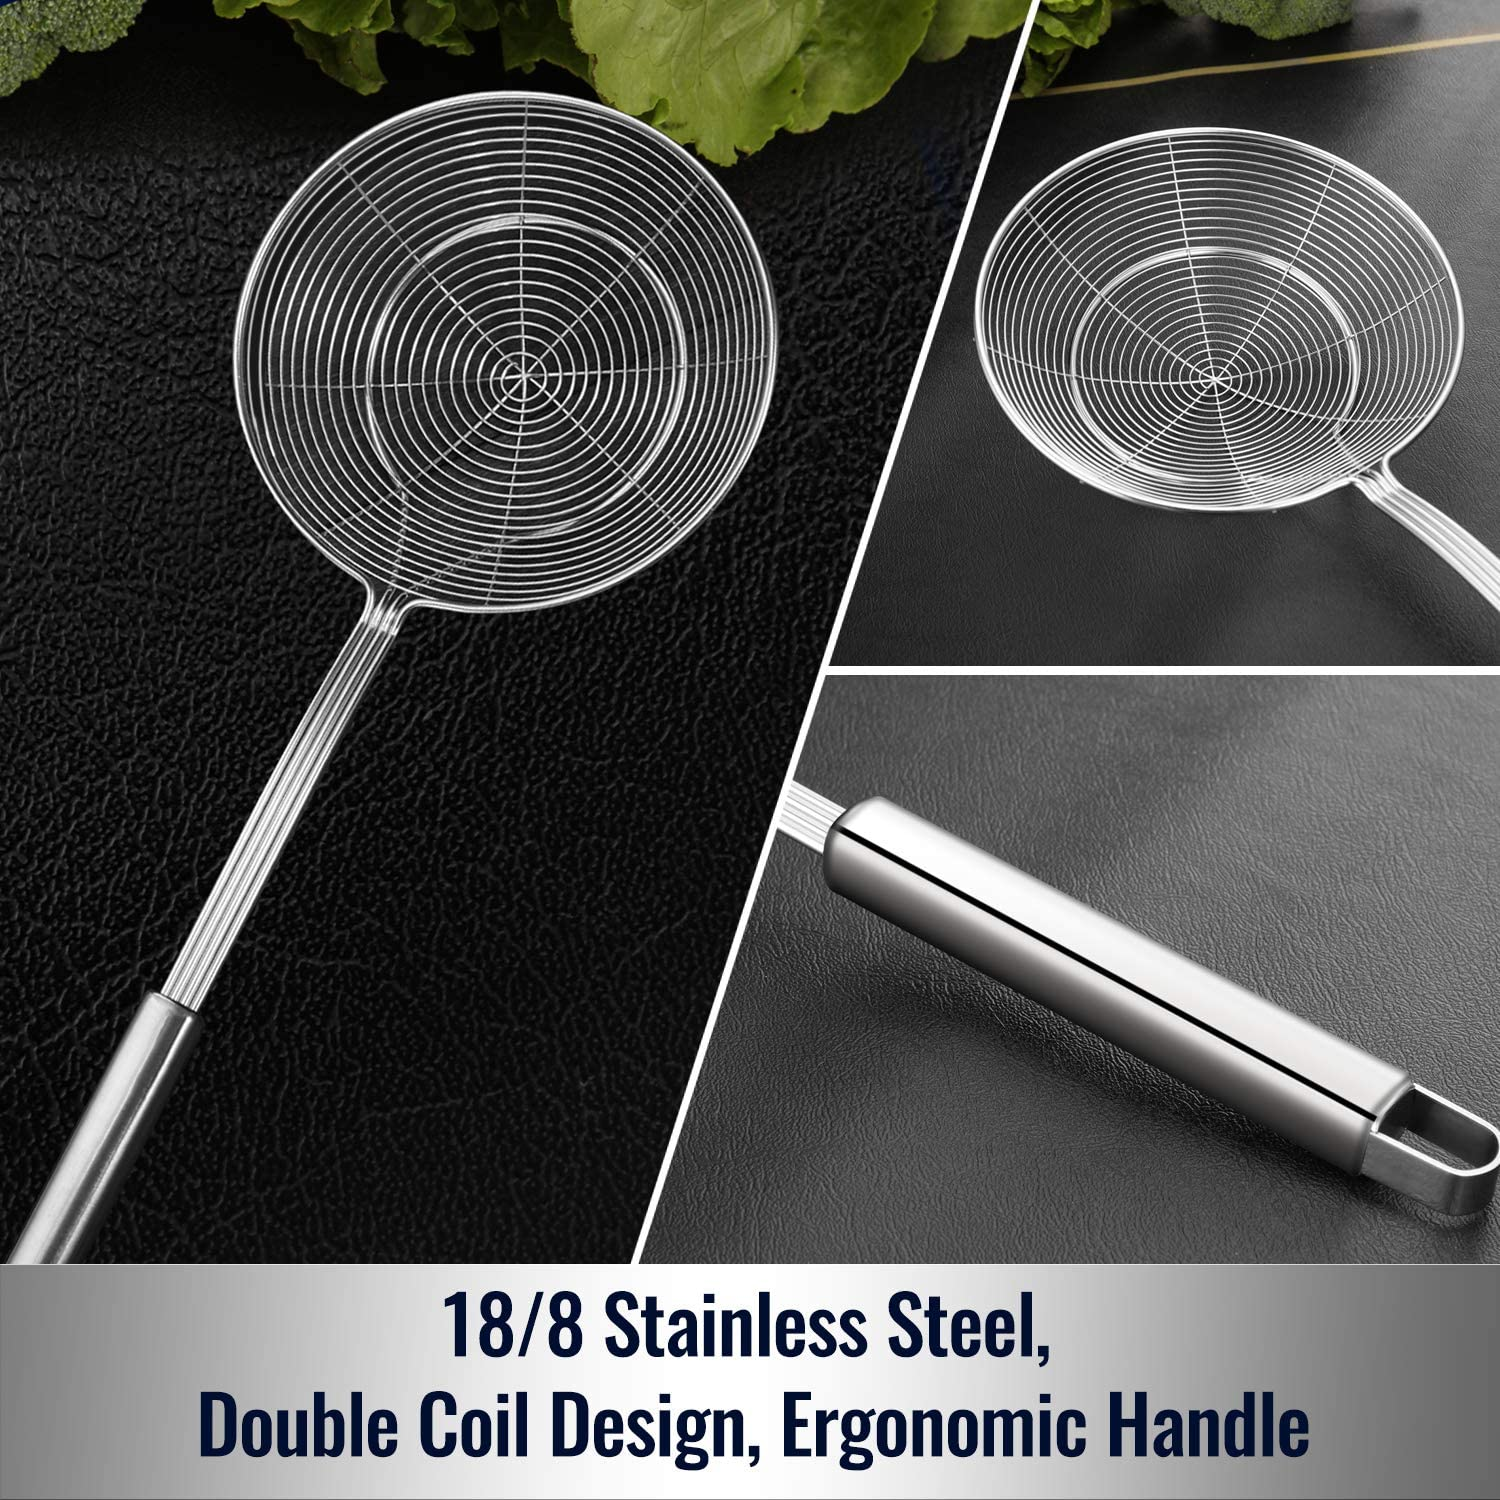 Solid Stainless Steel Spider Strainer Slotted Spoon - my #1 choice for bone broth!